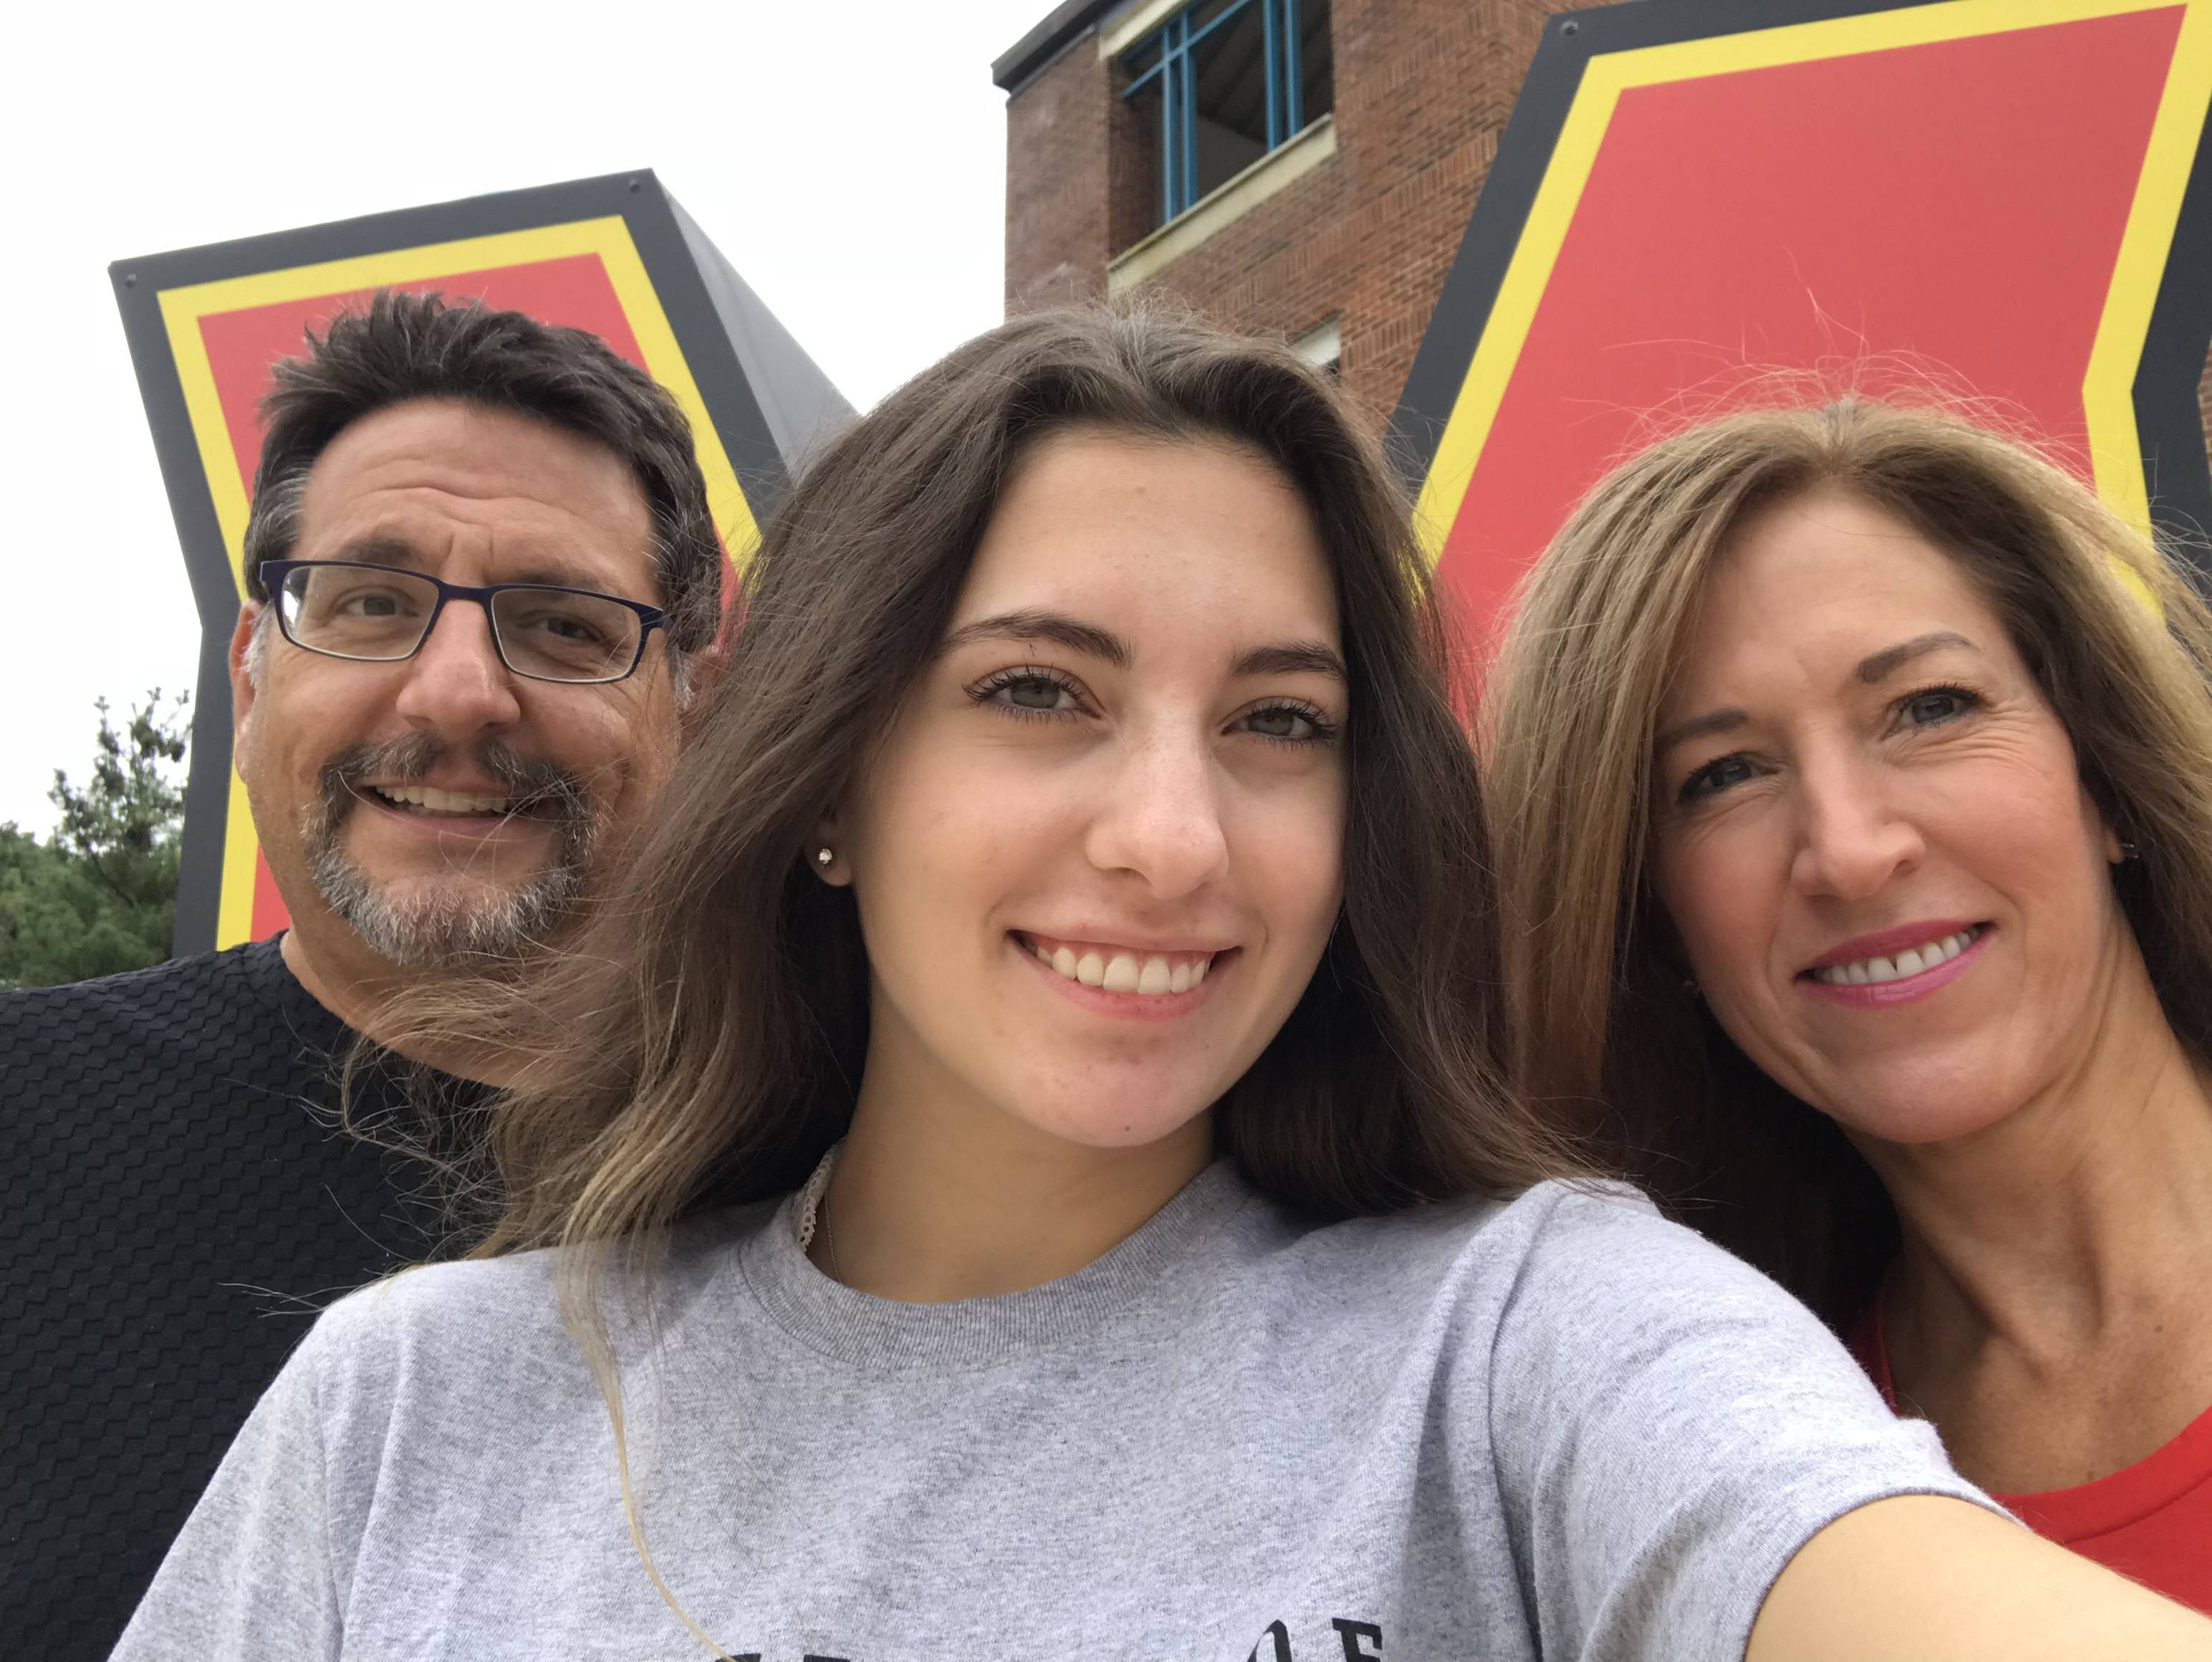 Olivia Paregol takes a selfie with her parents, Ian and Meg, at the University of Maryland in September 2018.